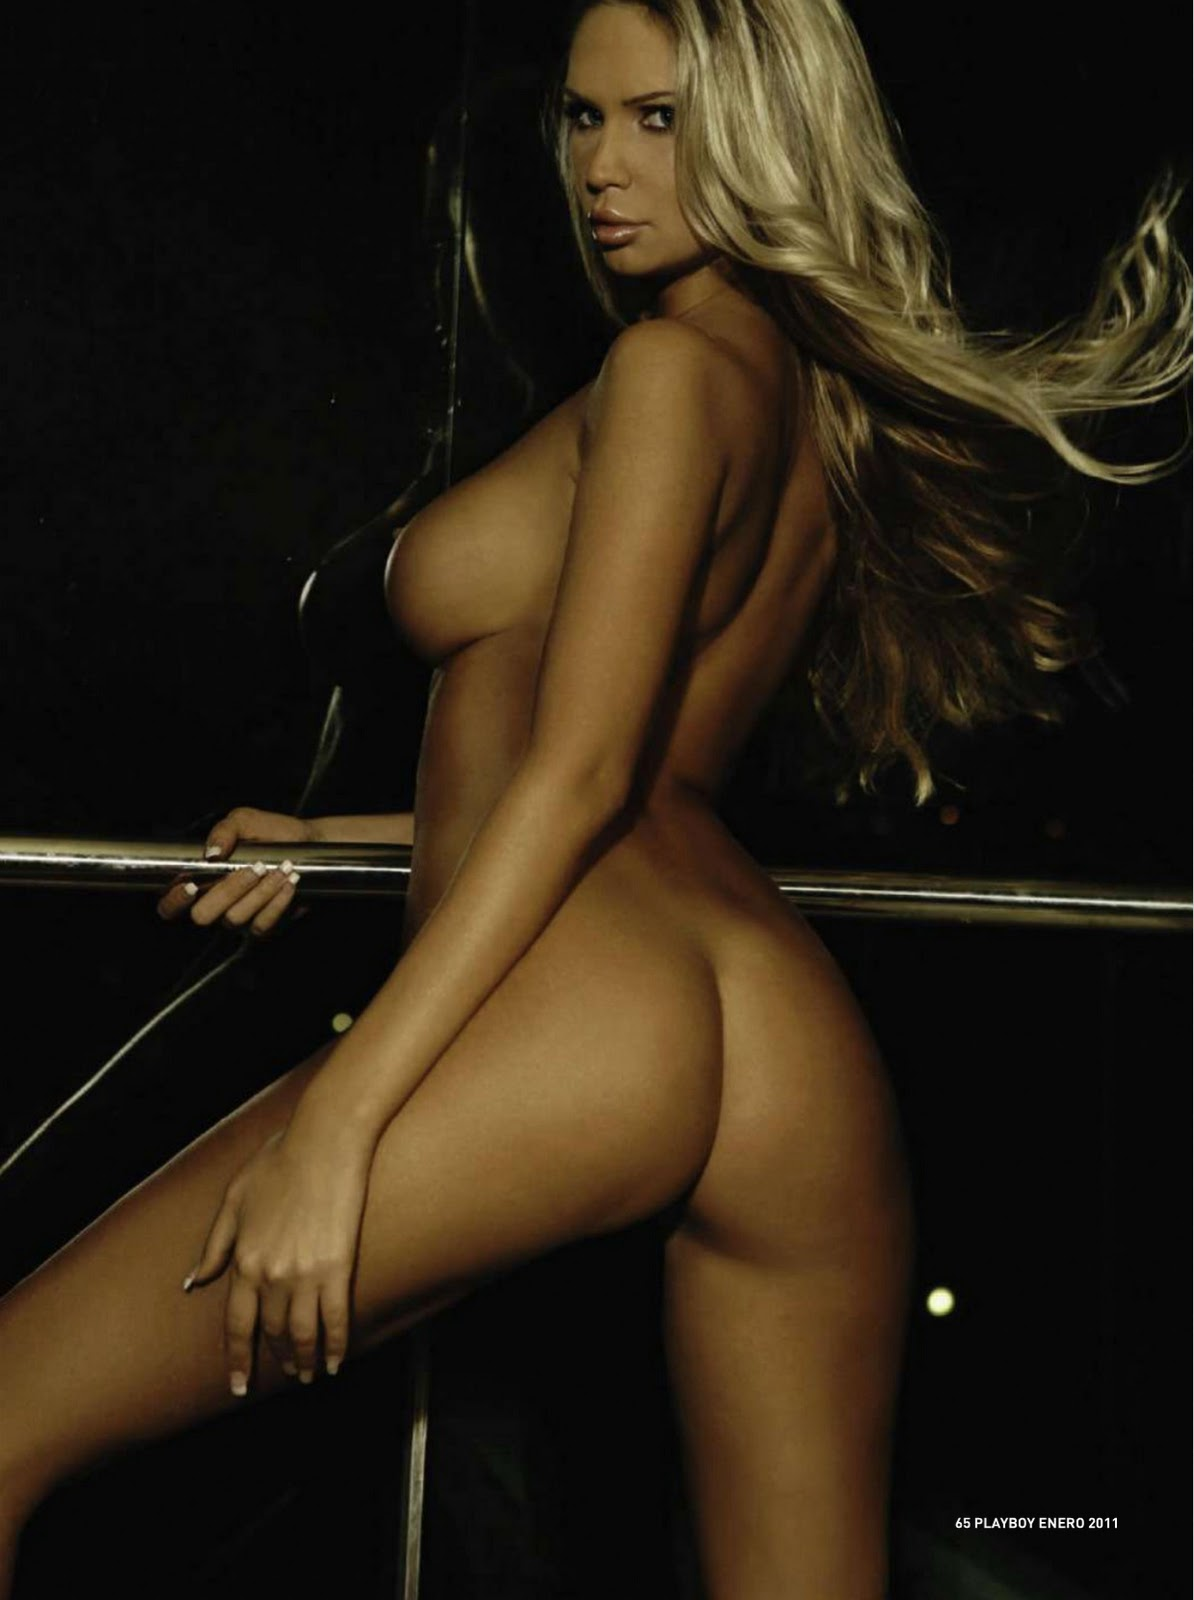 real home grown nude photos females